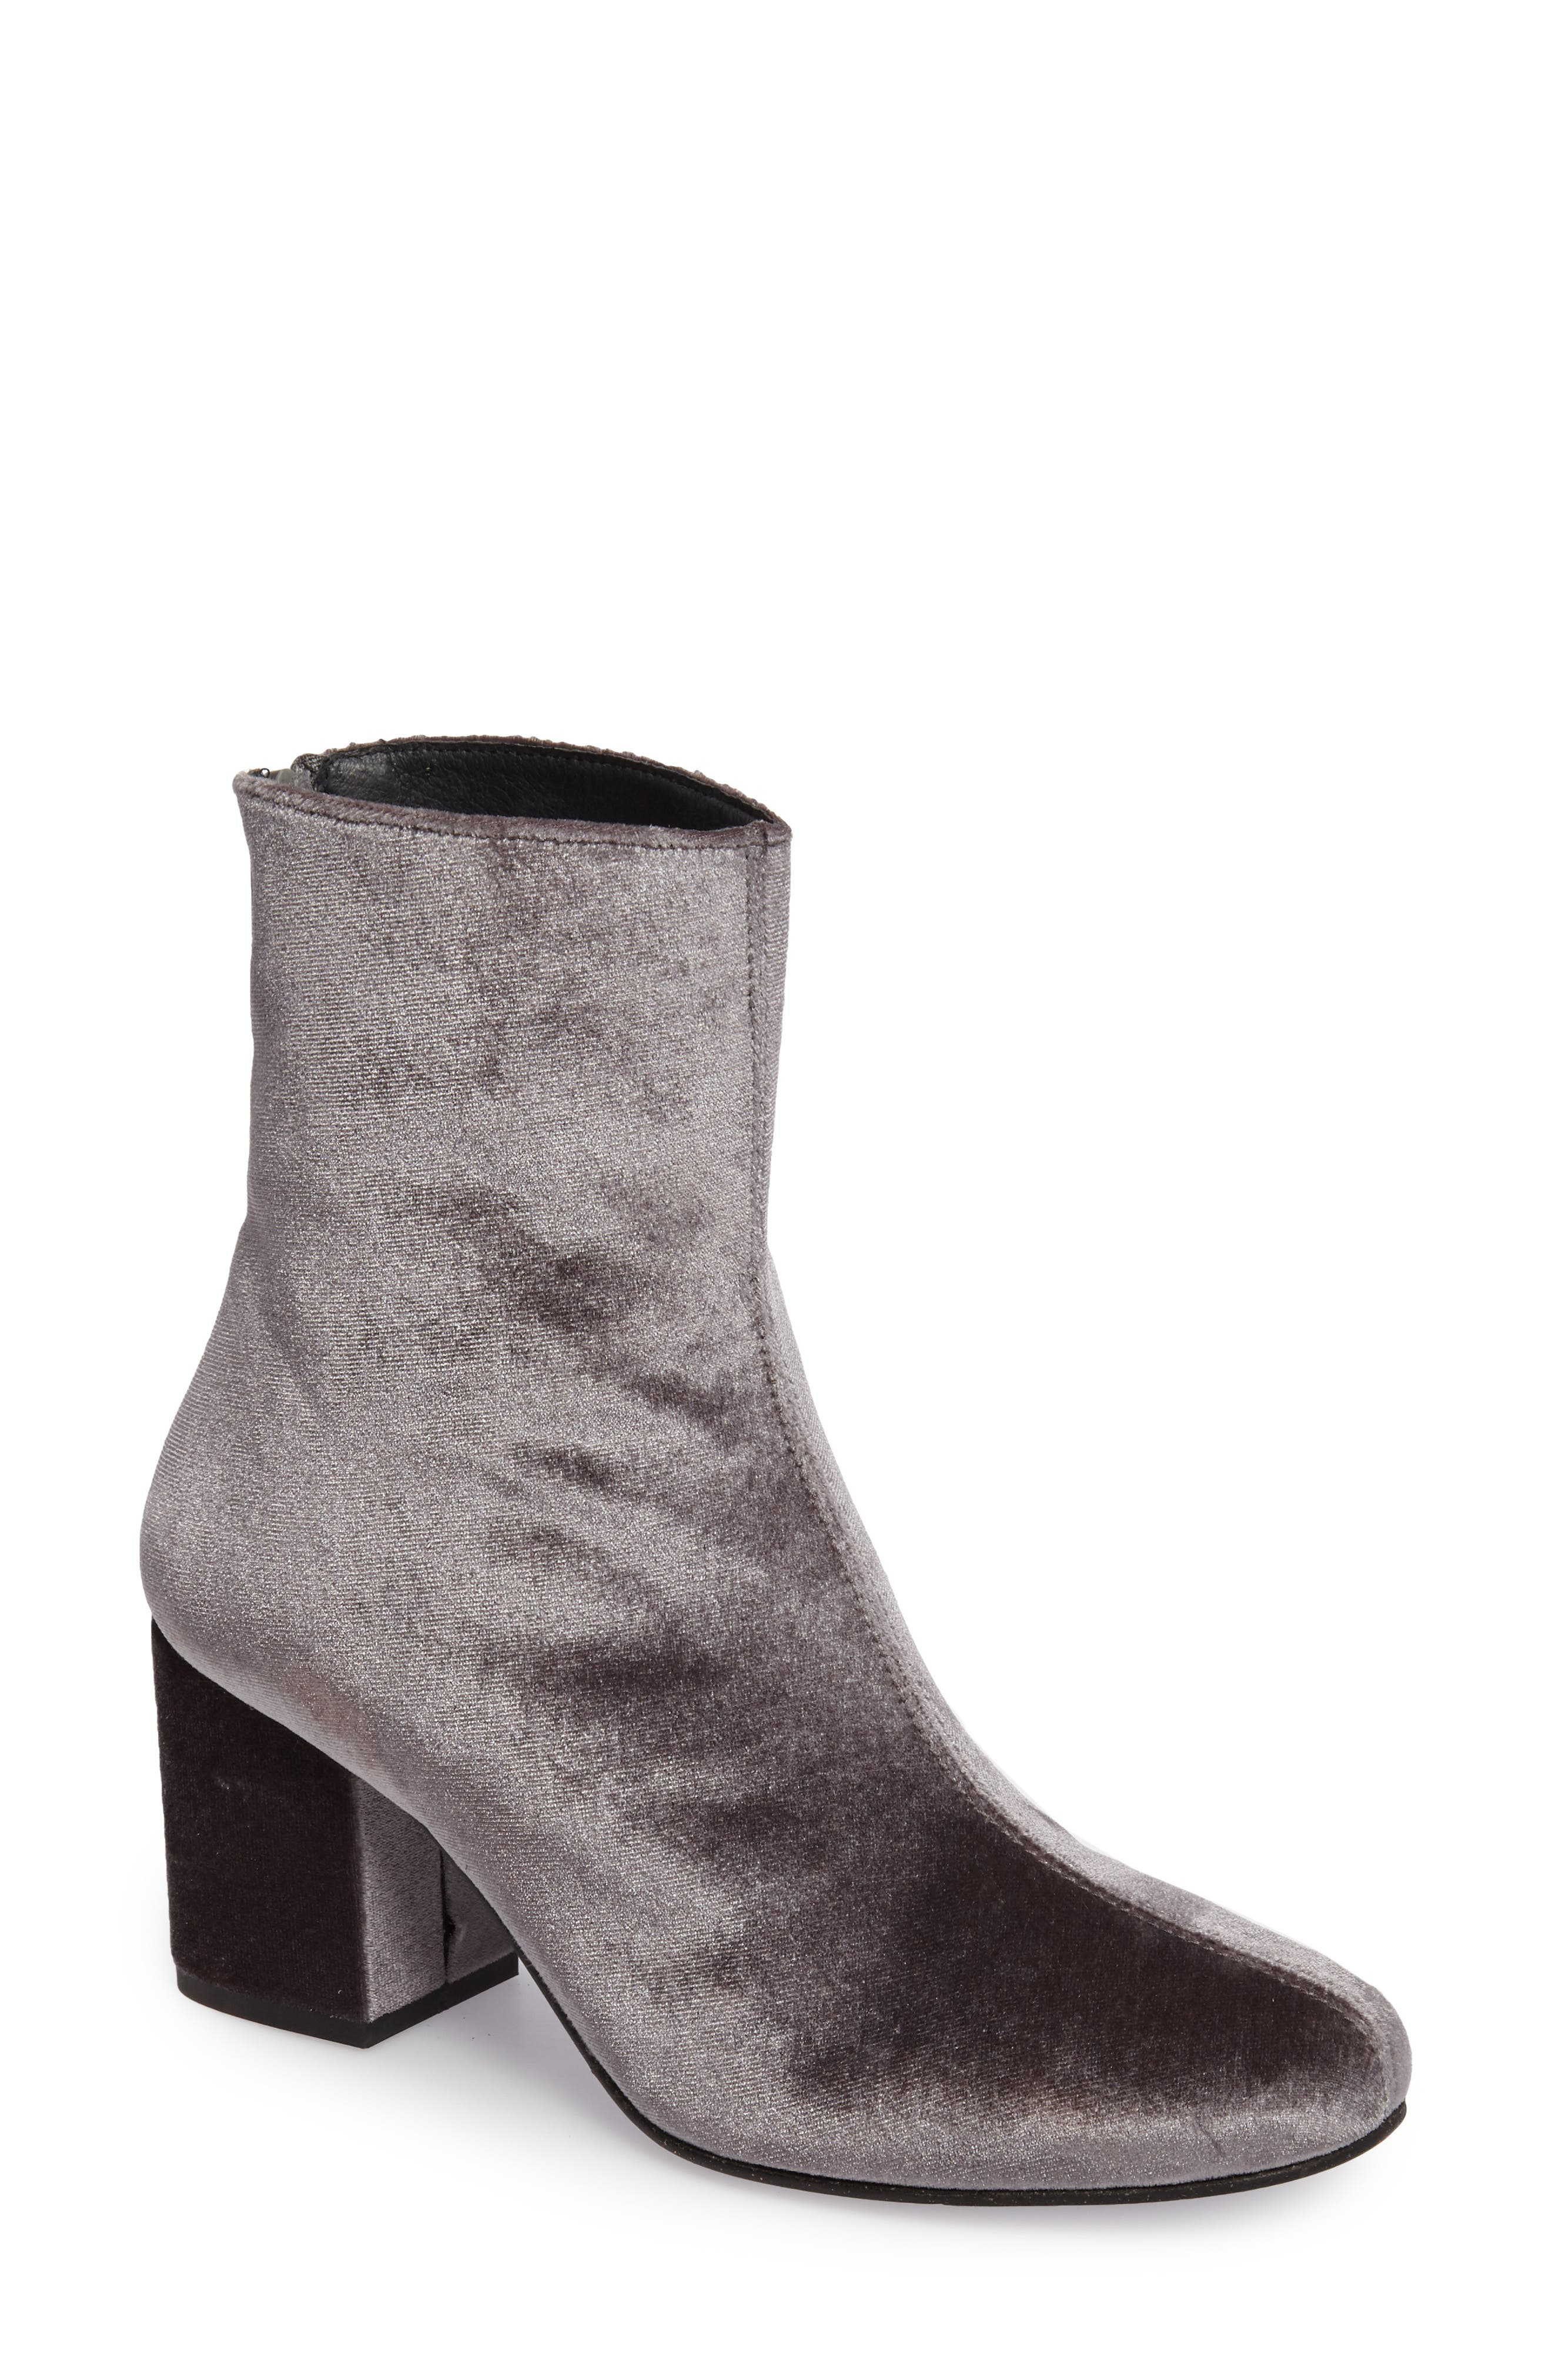 Free People Cecile Block Heel Bootie (Women)